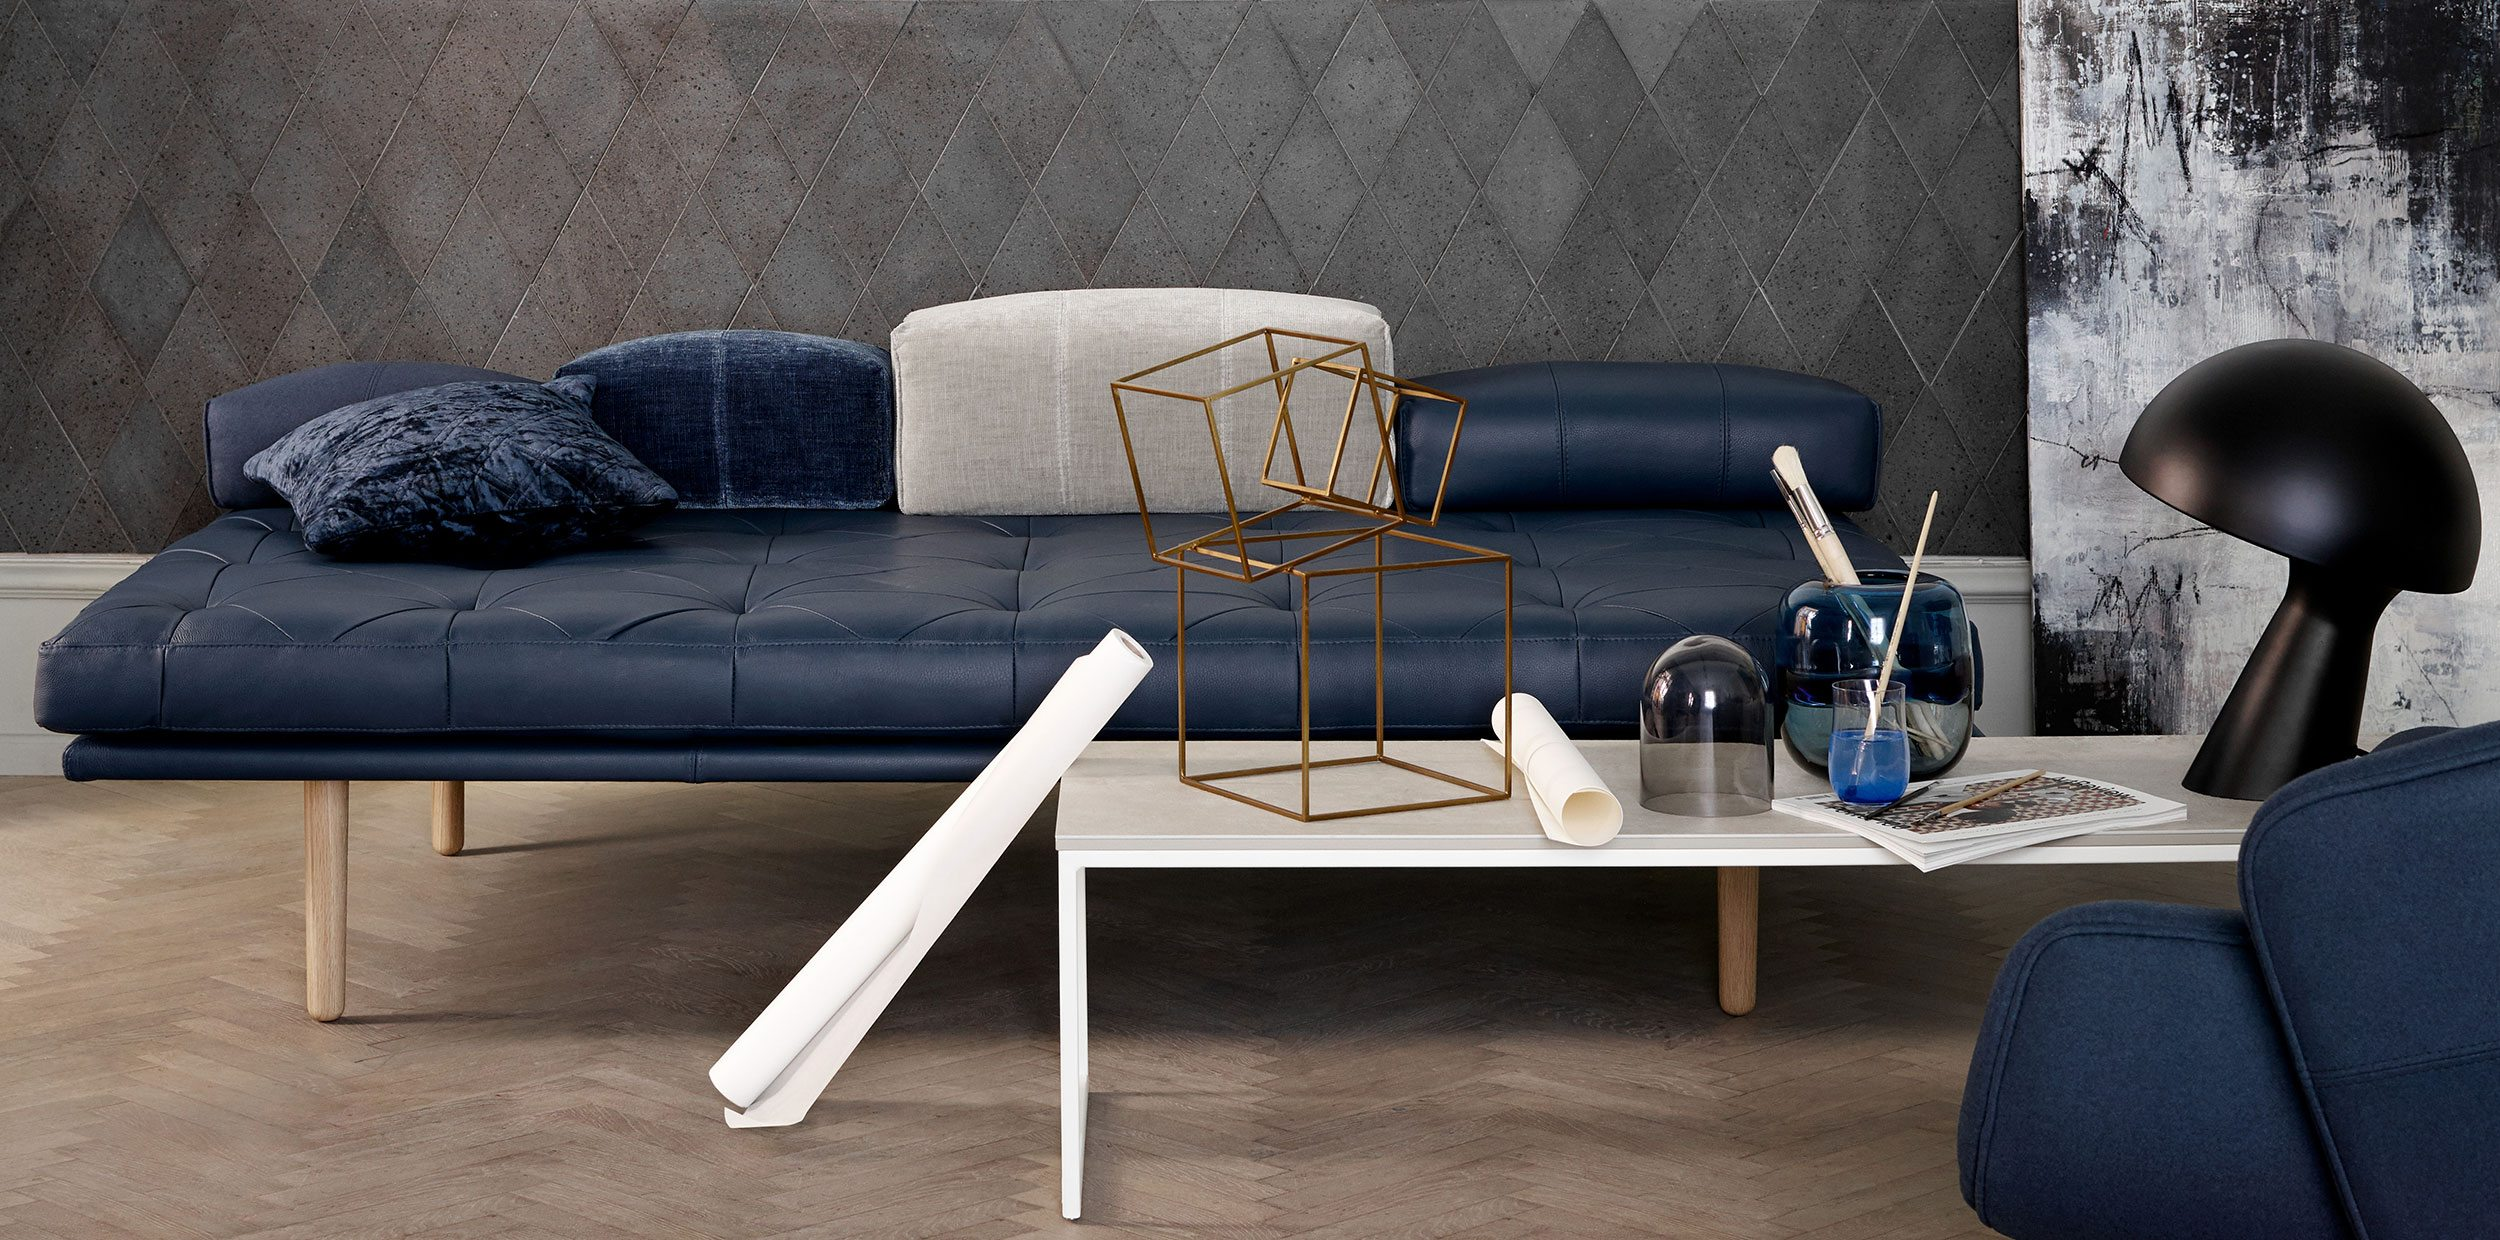 Blue Fusion daybed with oak legs and white coffee table